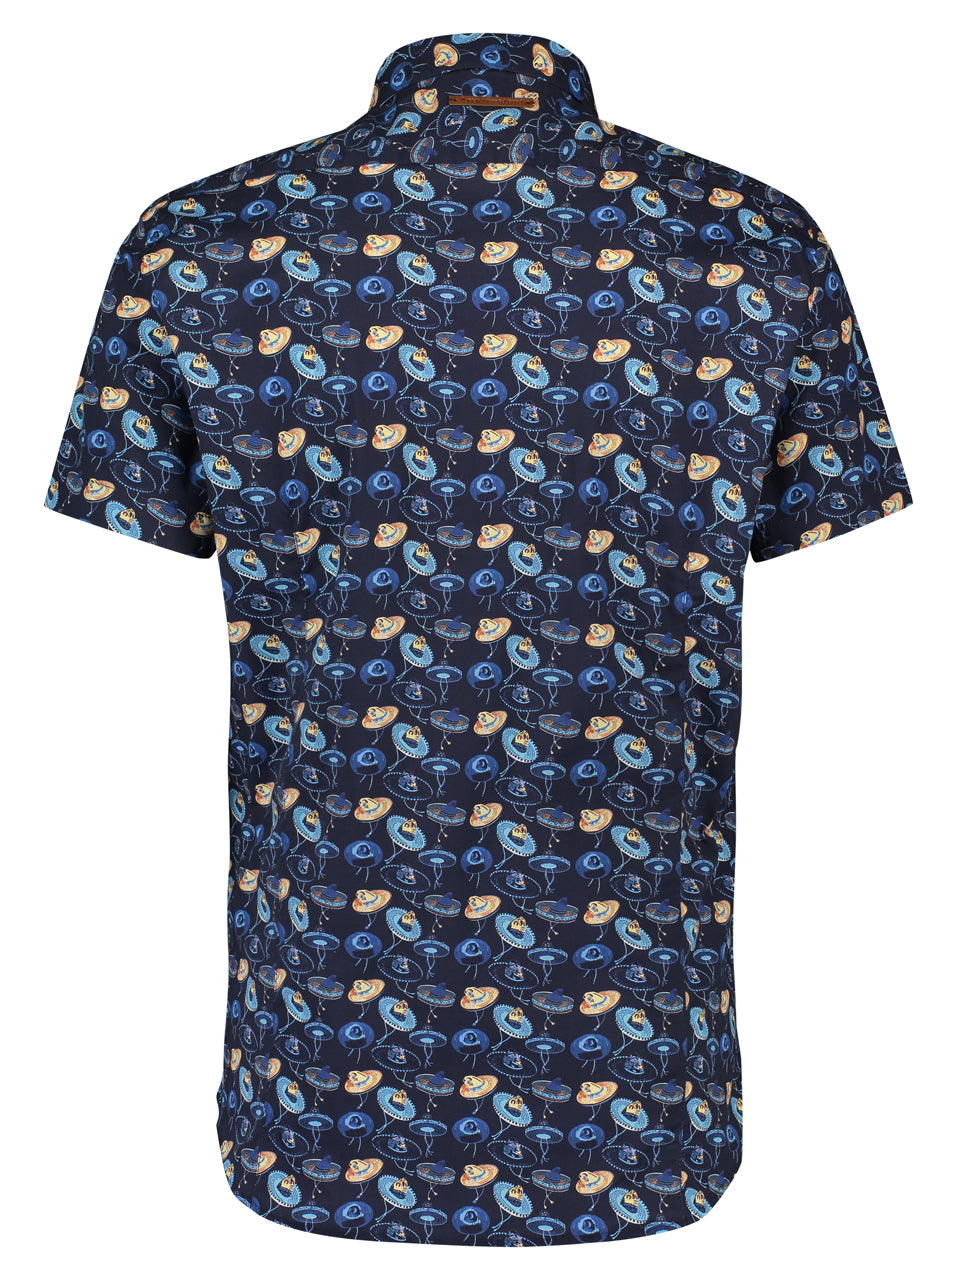 A Fish Named Fred Short Sleeve Shirt - Sombrero Print in Navy - MitchellMcCabe